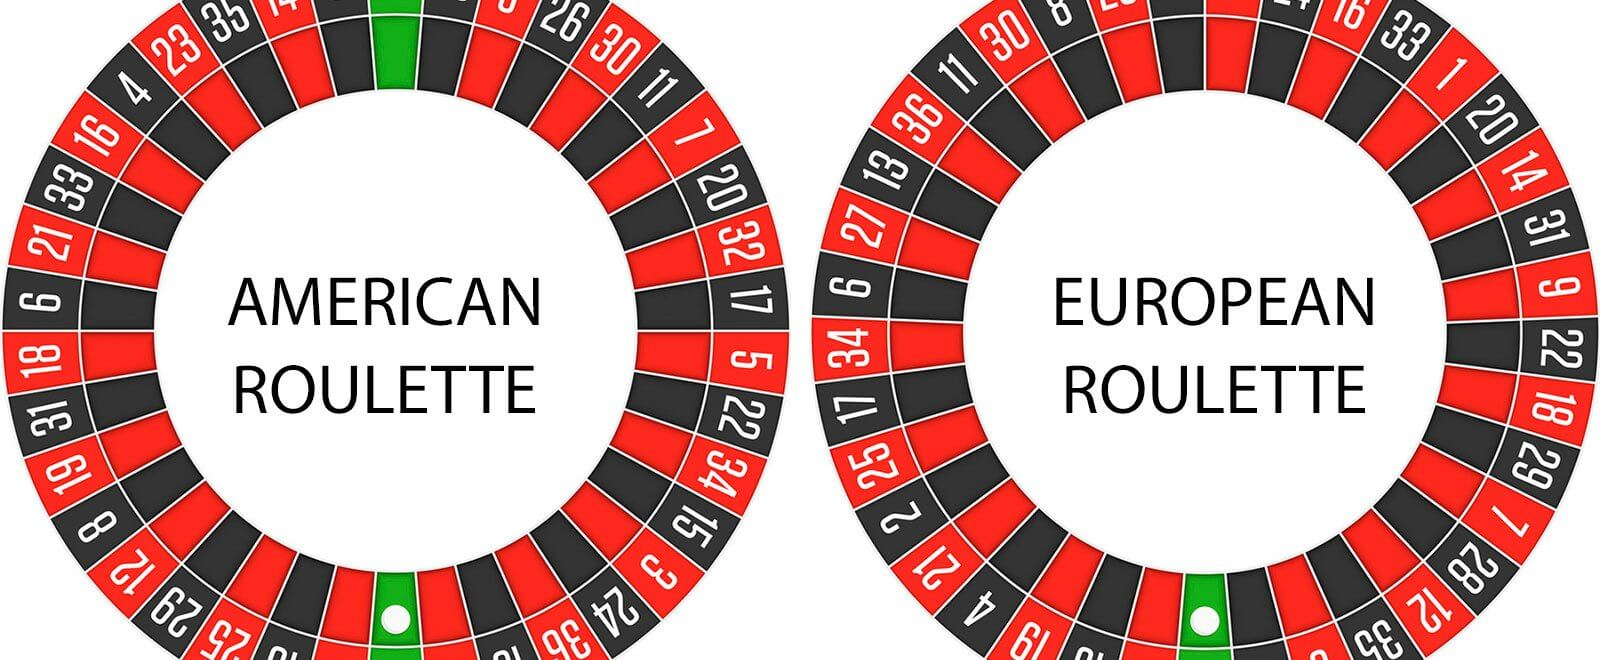 Key Differences Between American Roulette & European Roulette